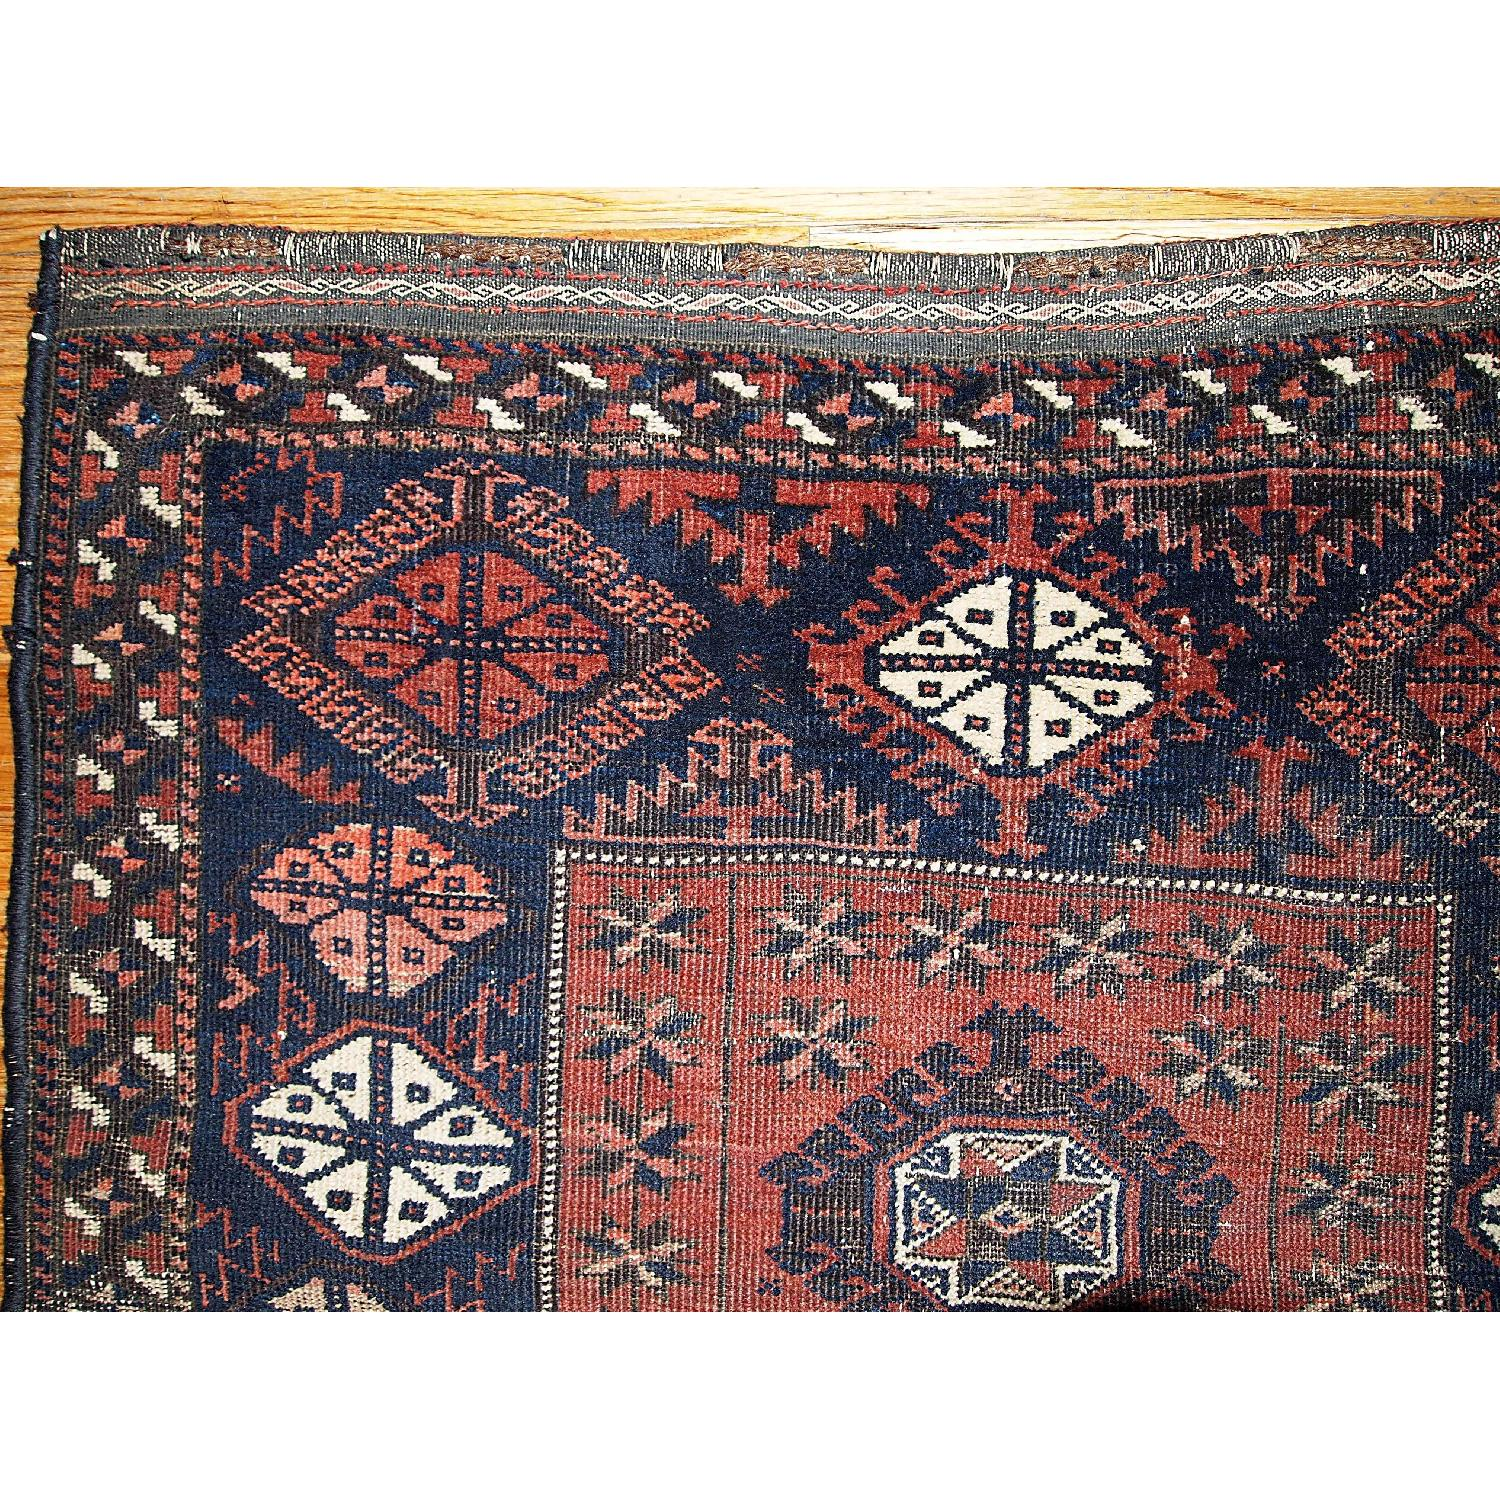 Antique Handmade Collectible Afghan Baluch Rug